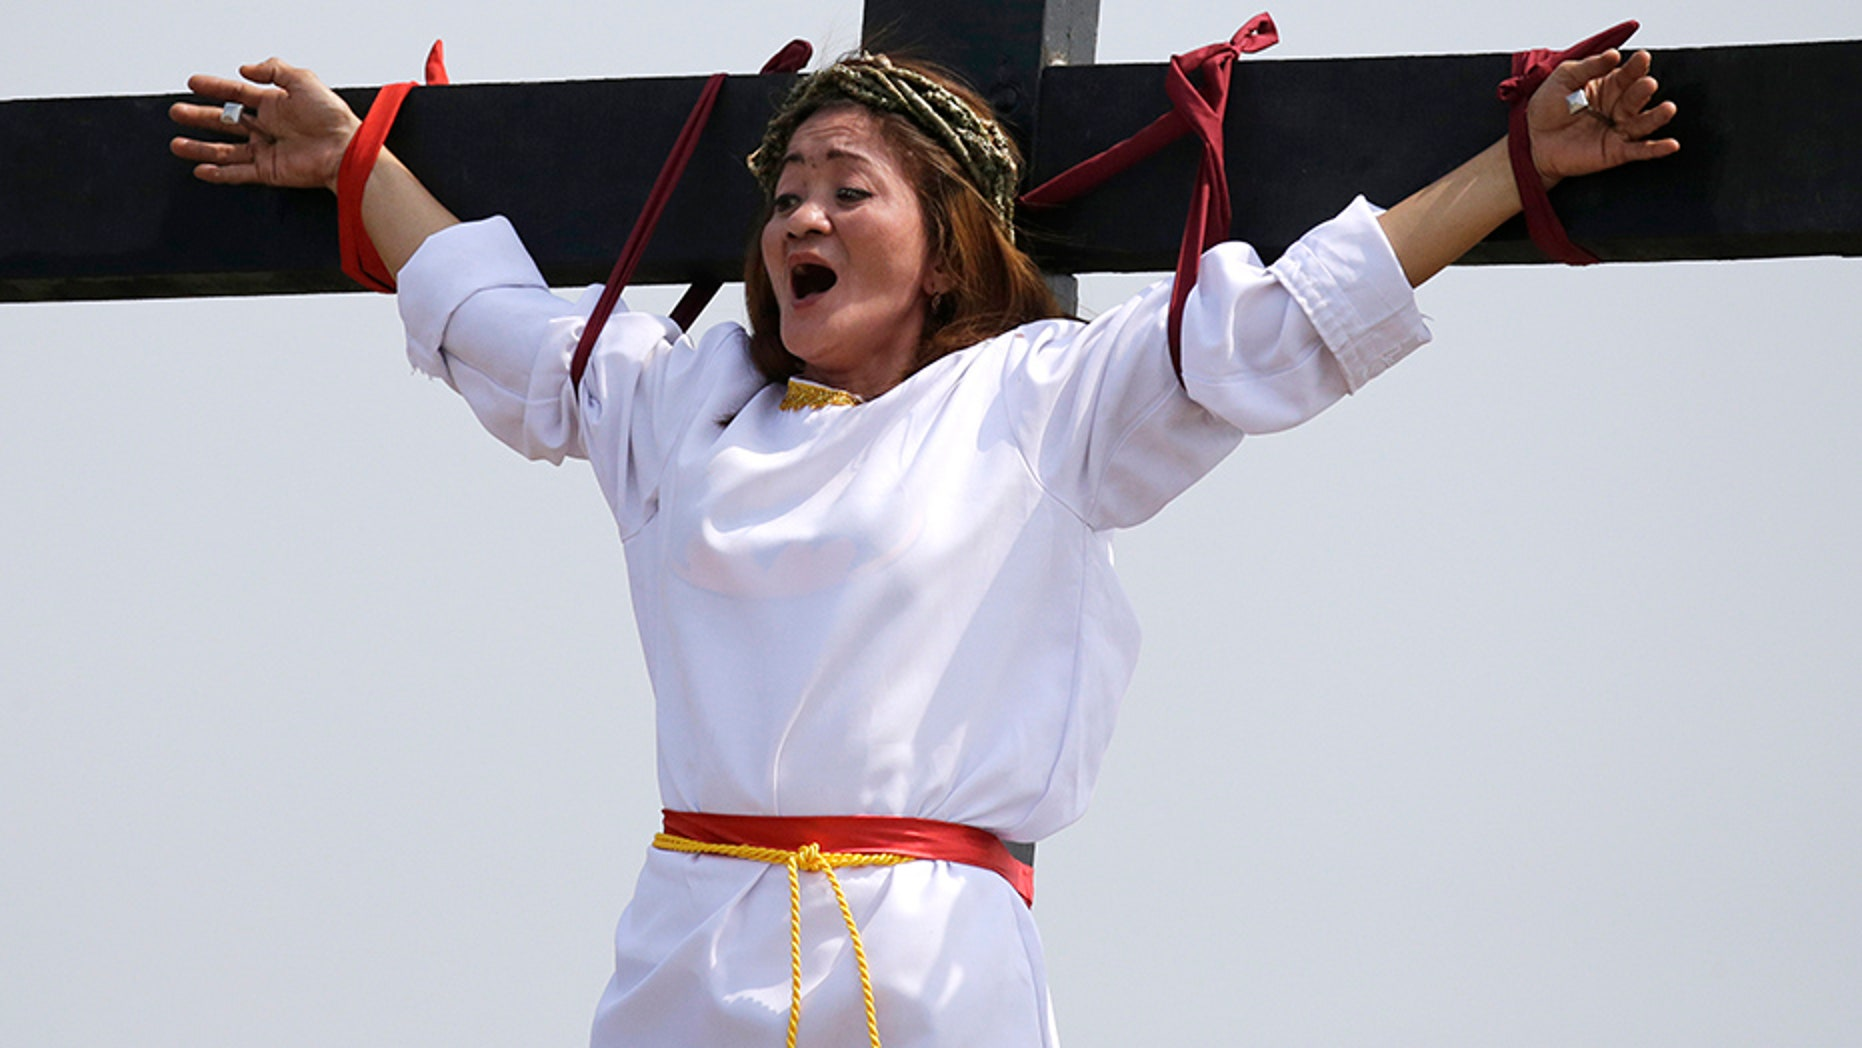 Maryjane Sazon, a 39-year-old beauty salon worker, grimaces as she gets nailed to the cross as part of Good Friday rituals in the village of San Pedro Cutud, Pampanga province, northern Philippines.